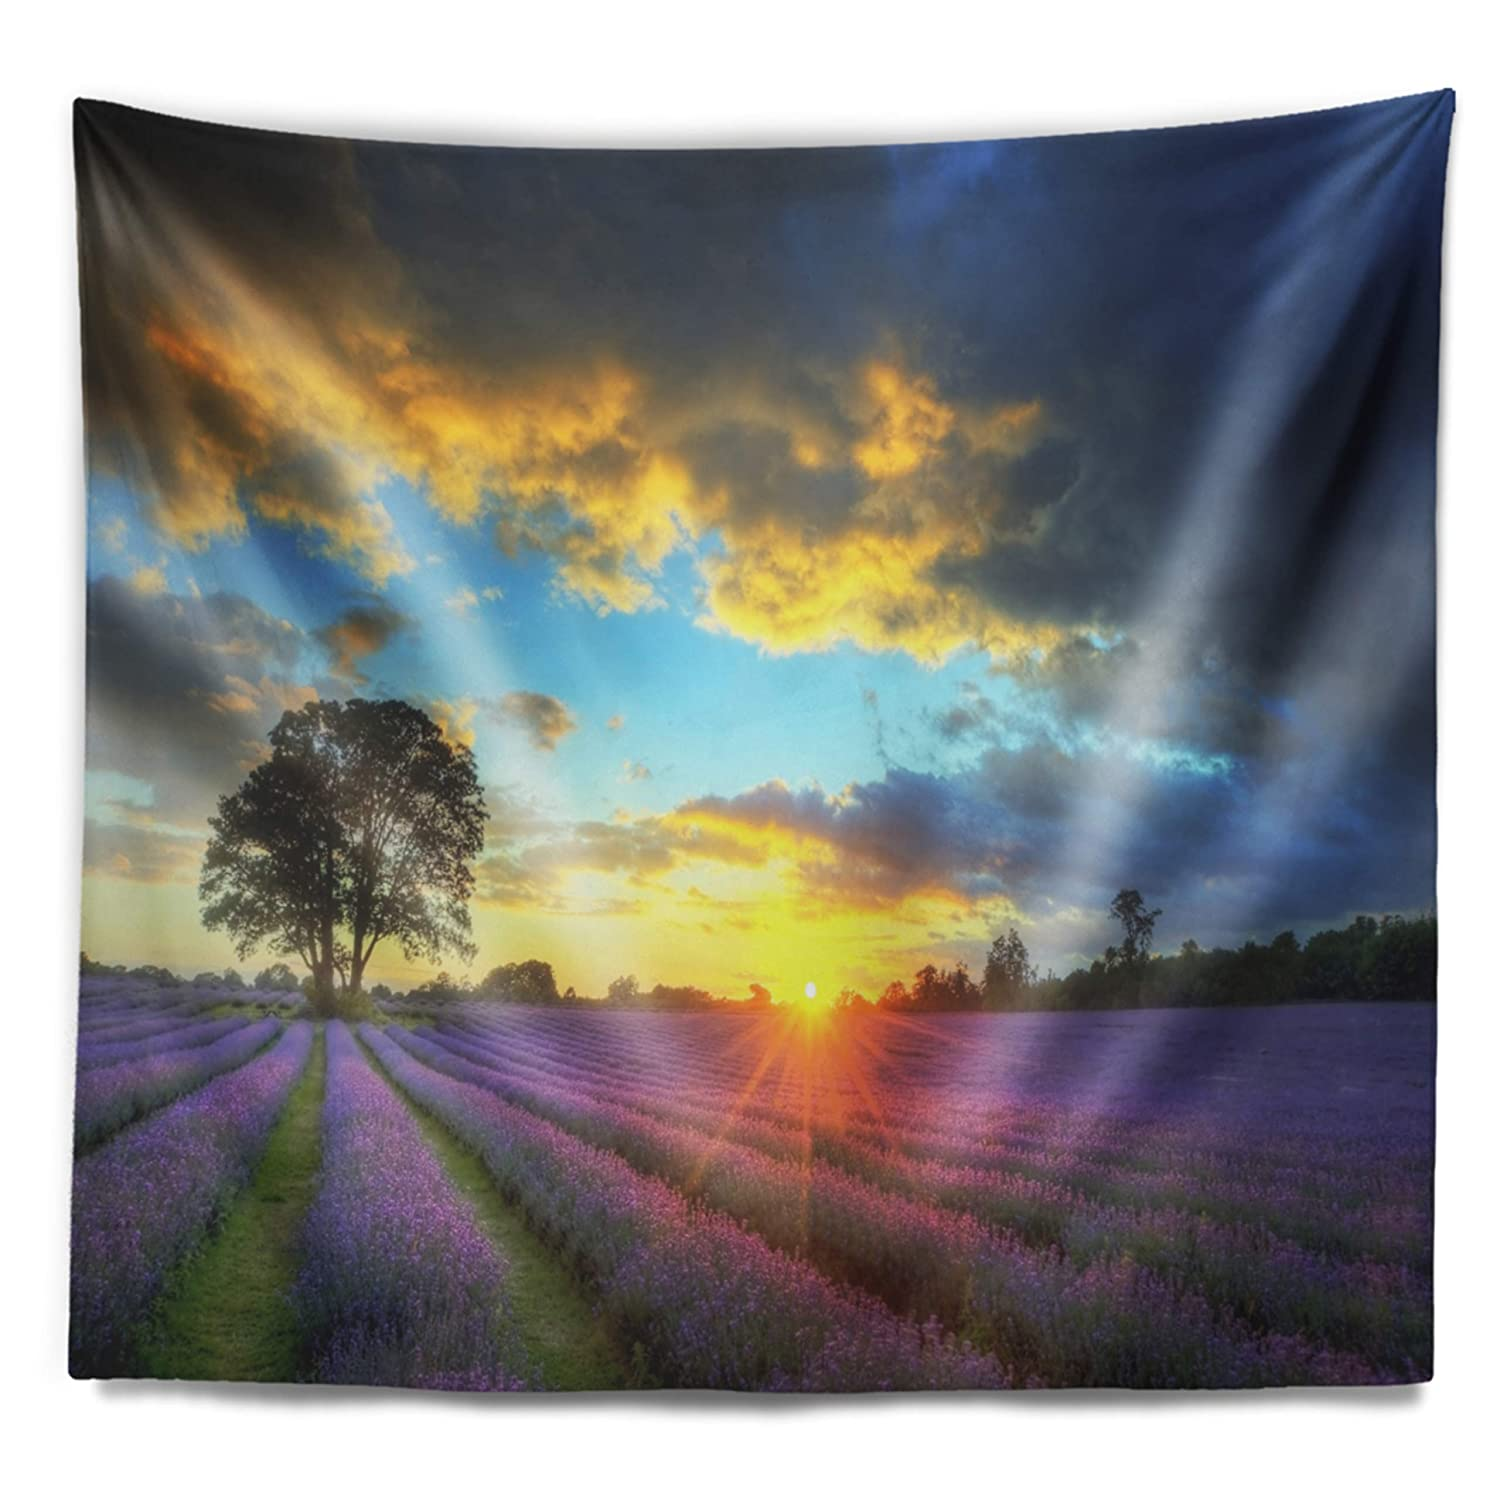 80 in x 68 in in Designart TAP12378-80-68  Colorful Sky Over Vibrant Lavender Field Floral Blanket D/écor Art for Home and Office Wall Tapestry x Large